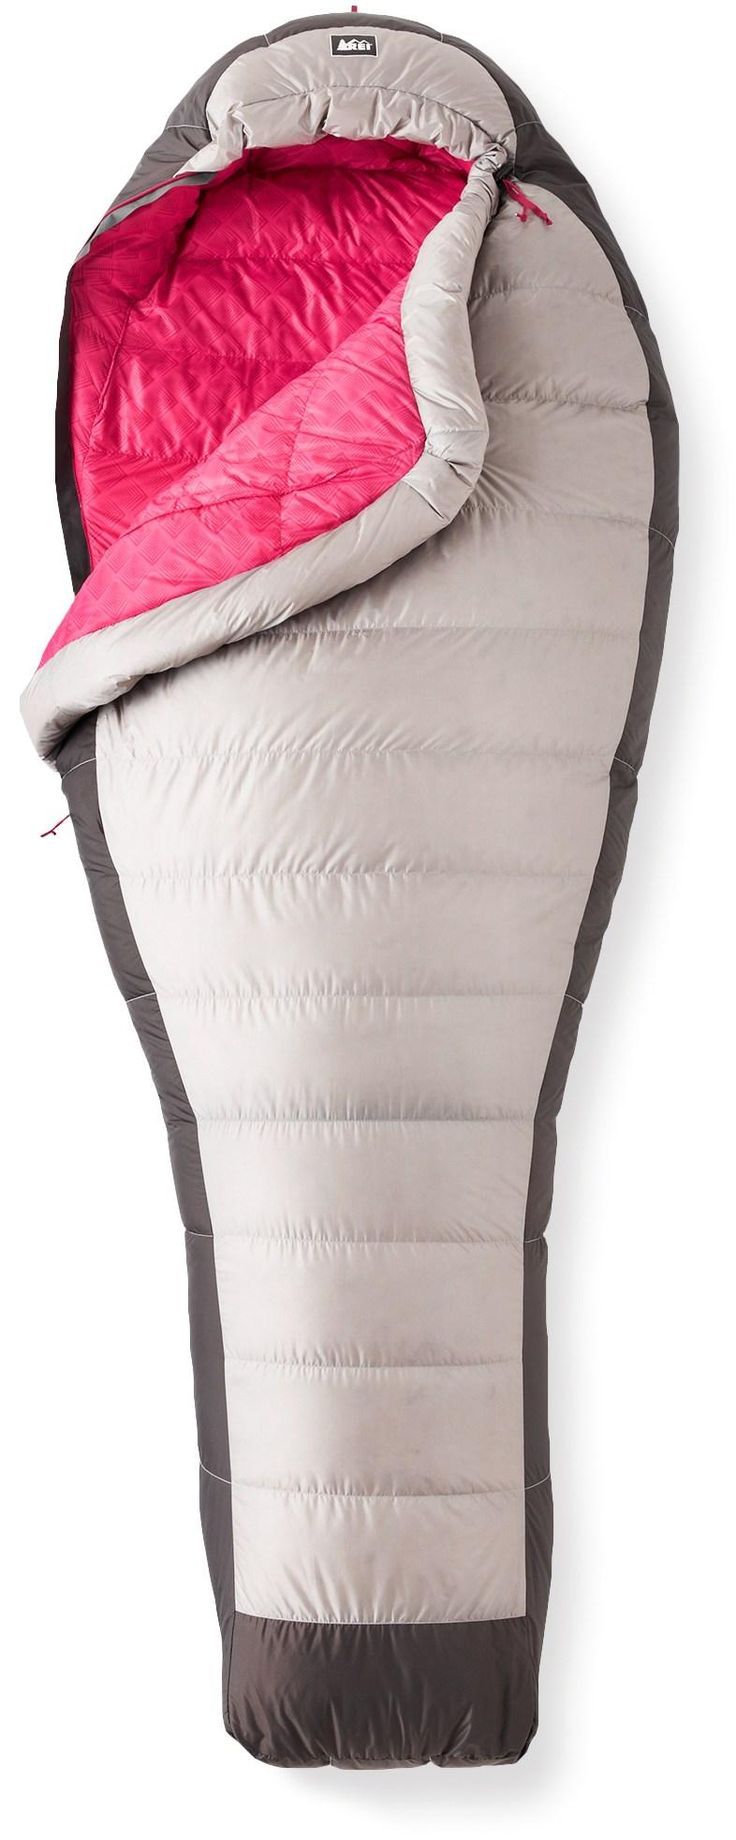 Joule Sleeping Bag / REI #sponsored